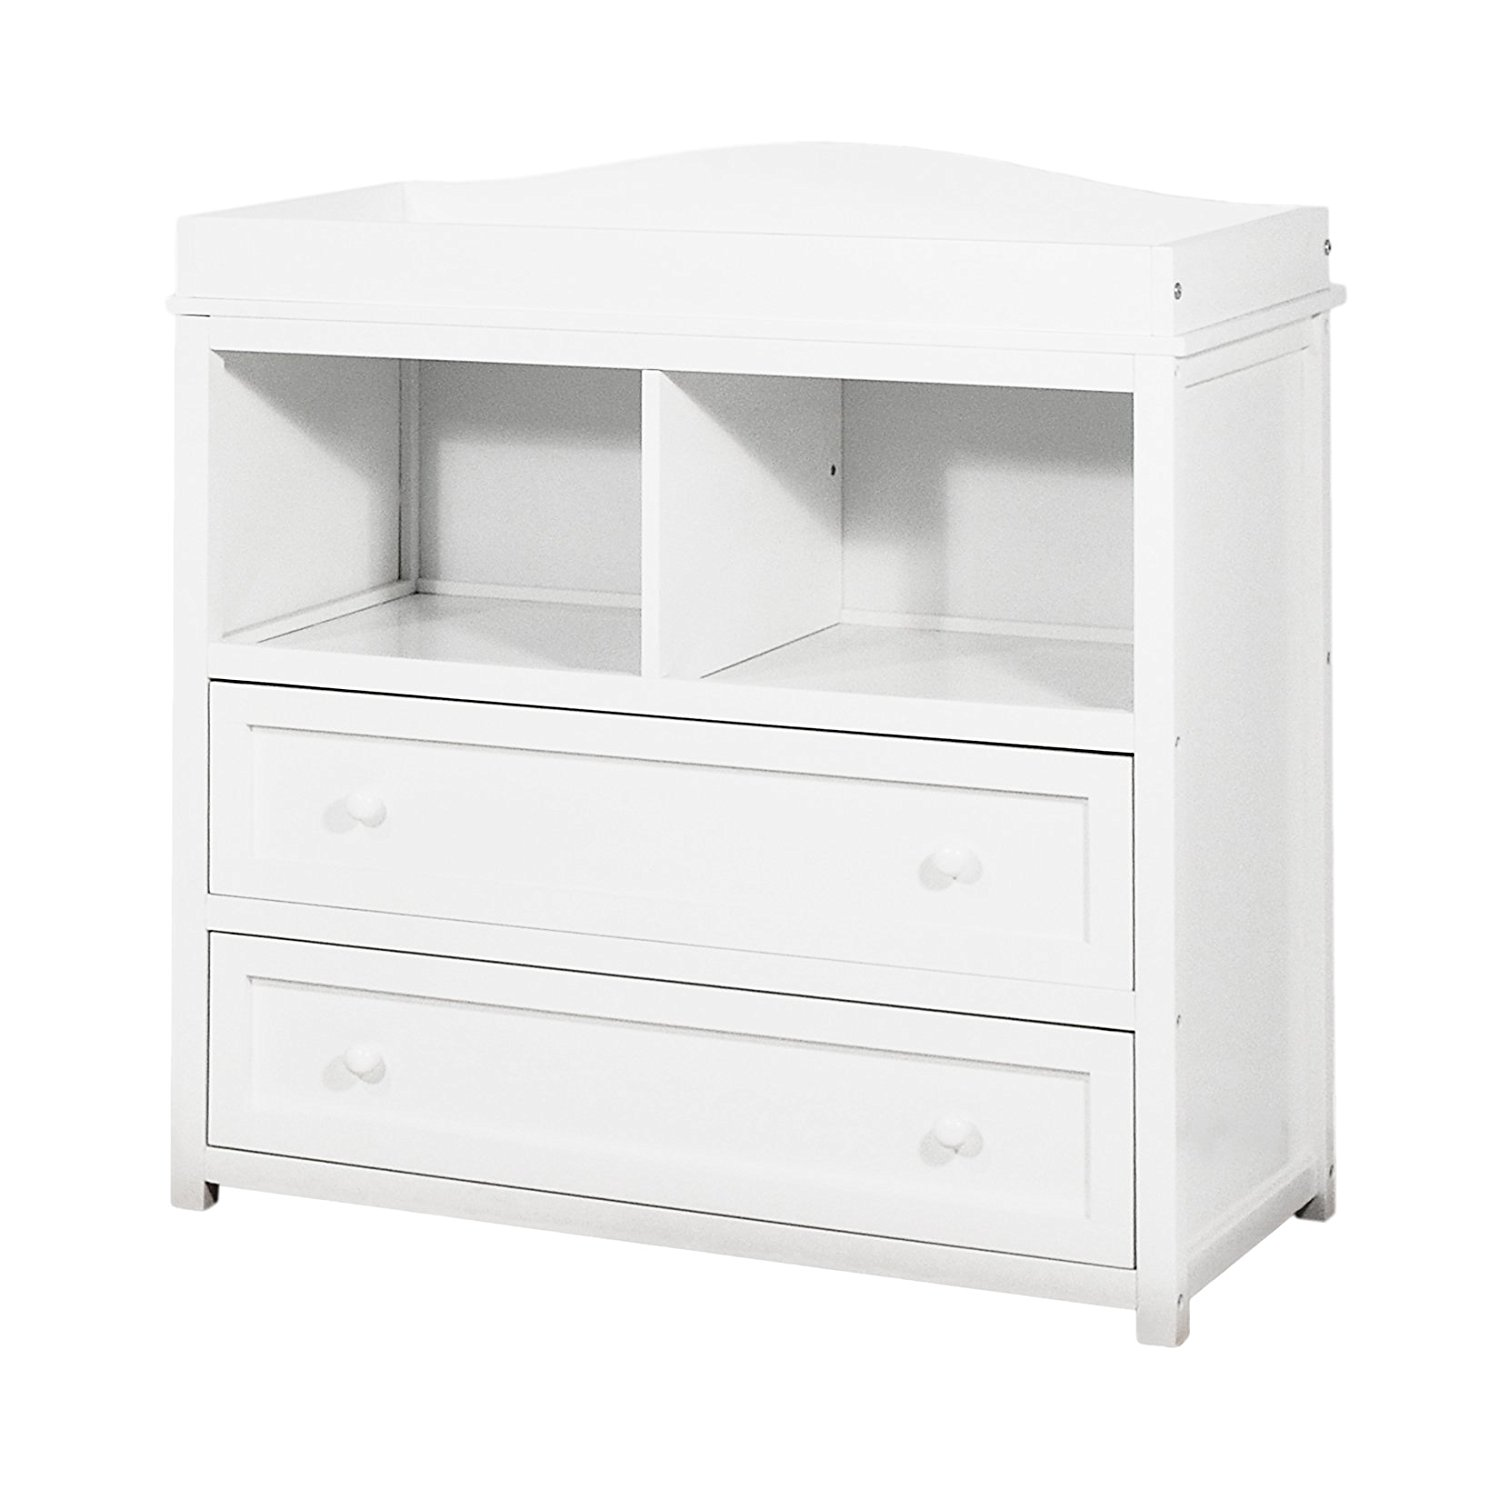 Walmart Changing Tables | Bitty Baby Changing Table | Changing Table with Dresser